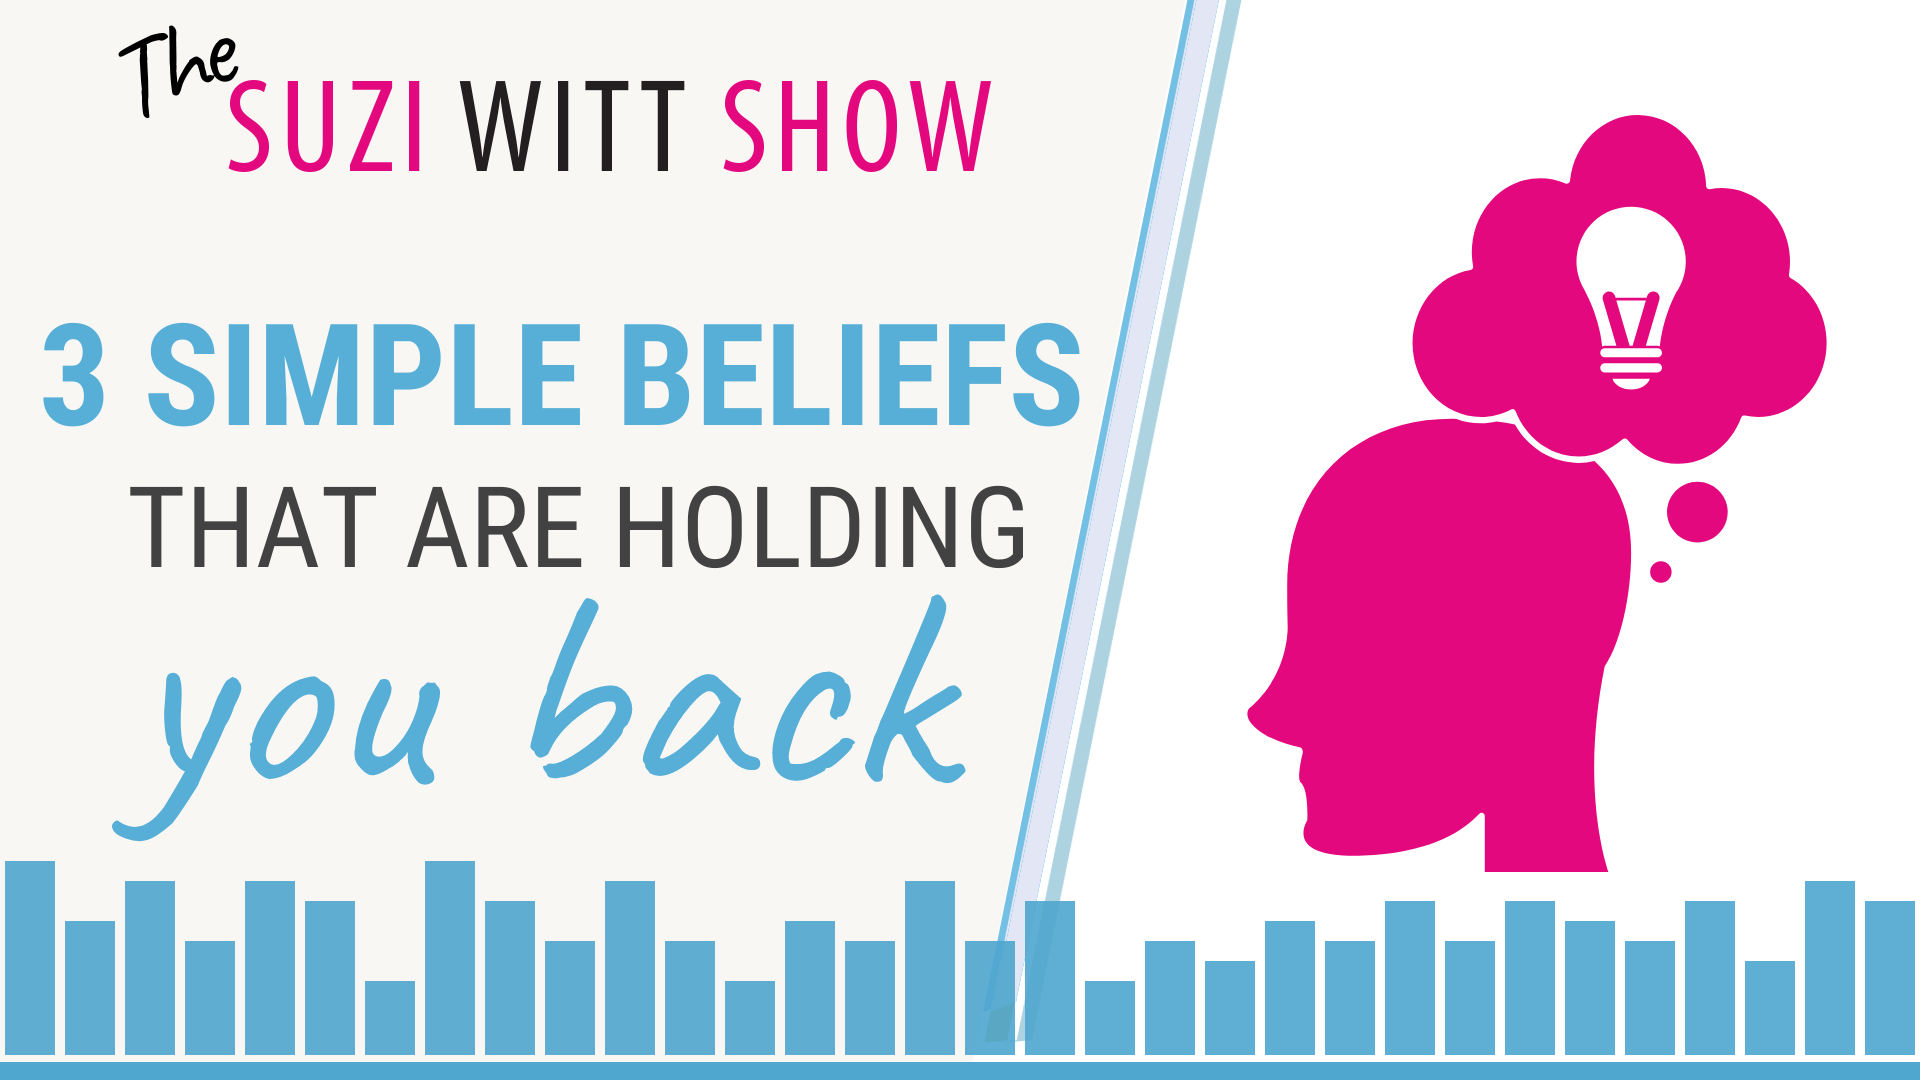 3 Simple Beliefs that are Holding You Back